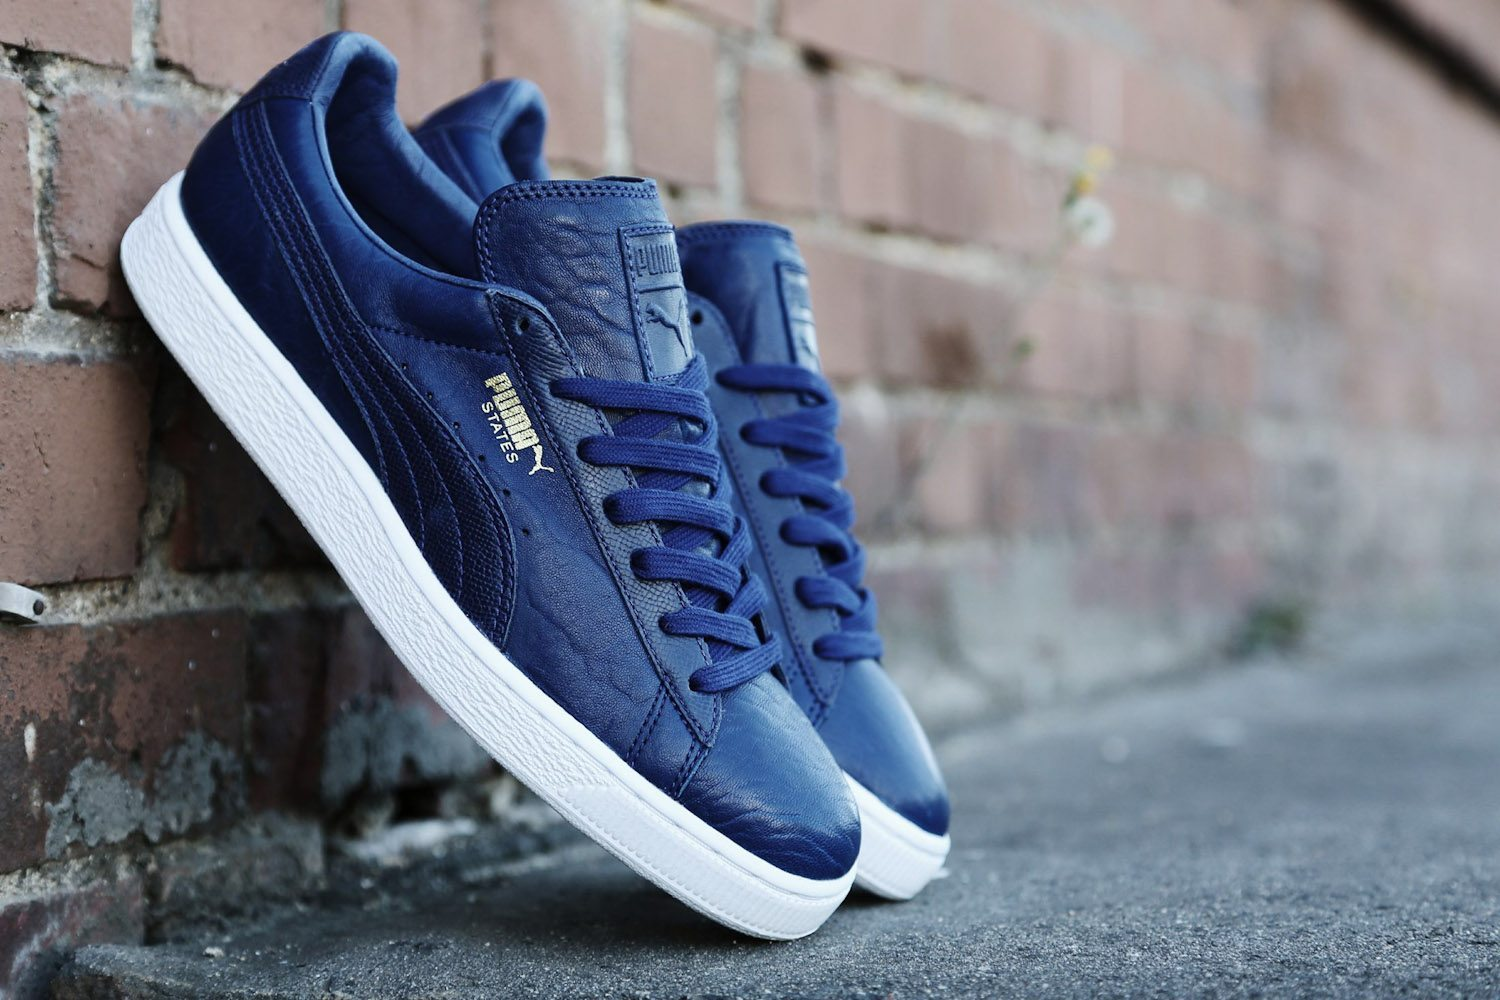 PUMA States Premium Leather Pack 6